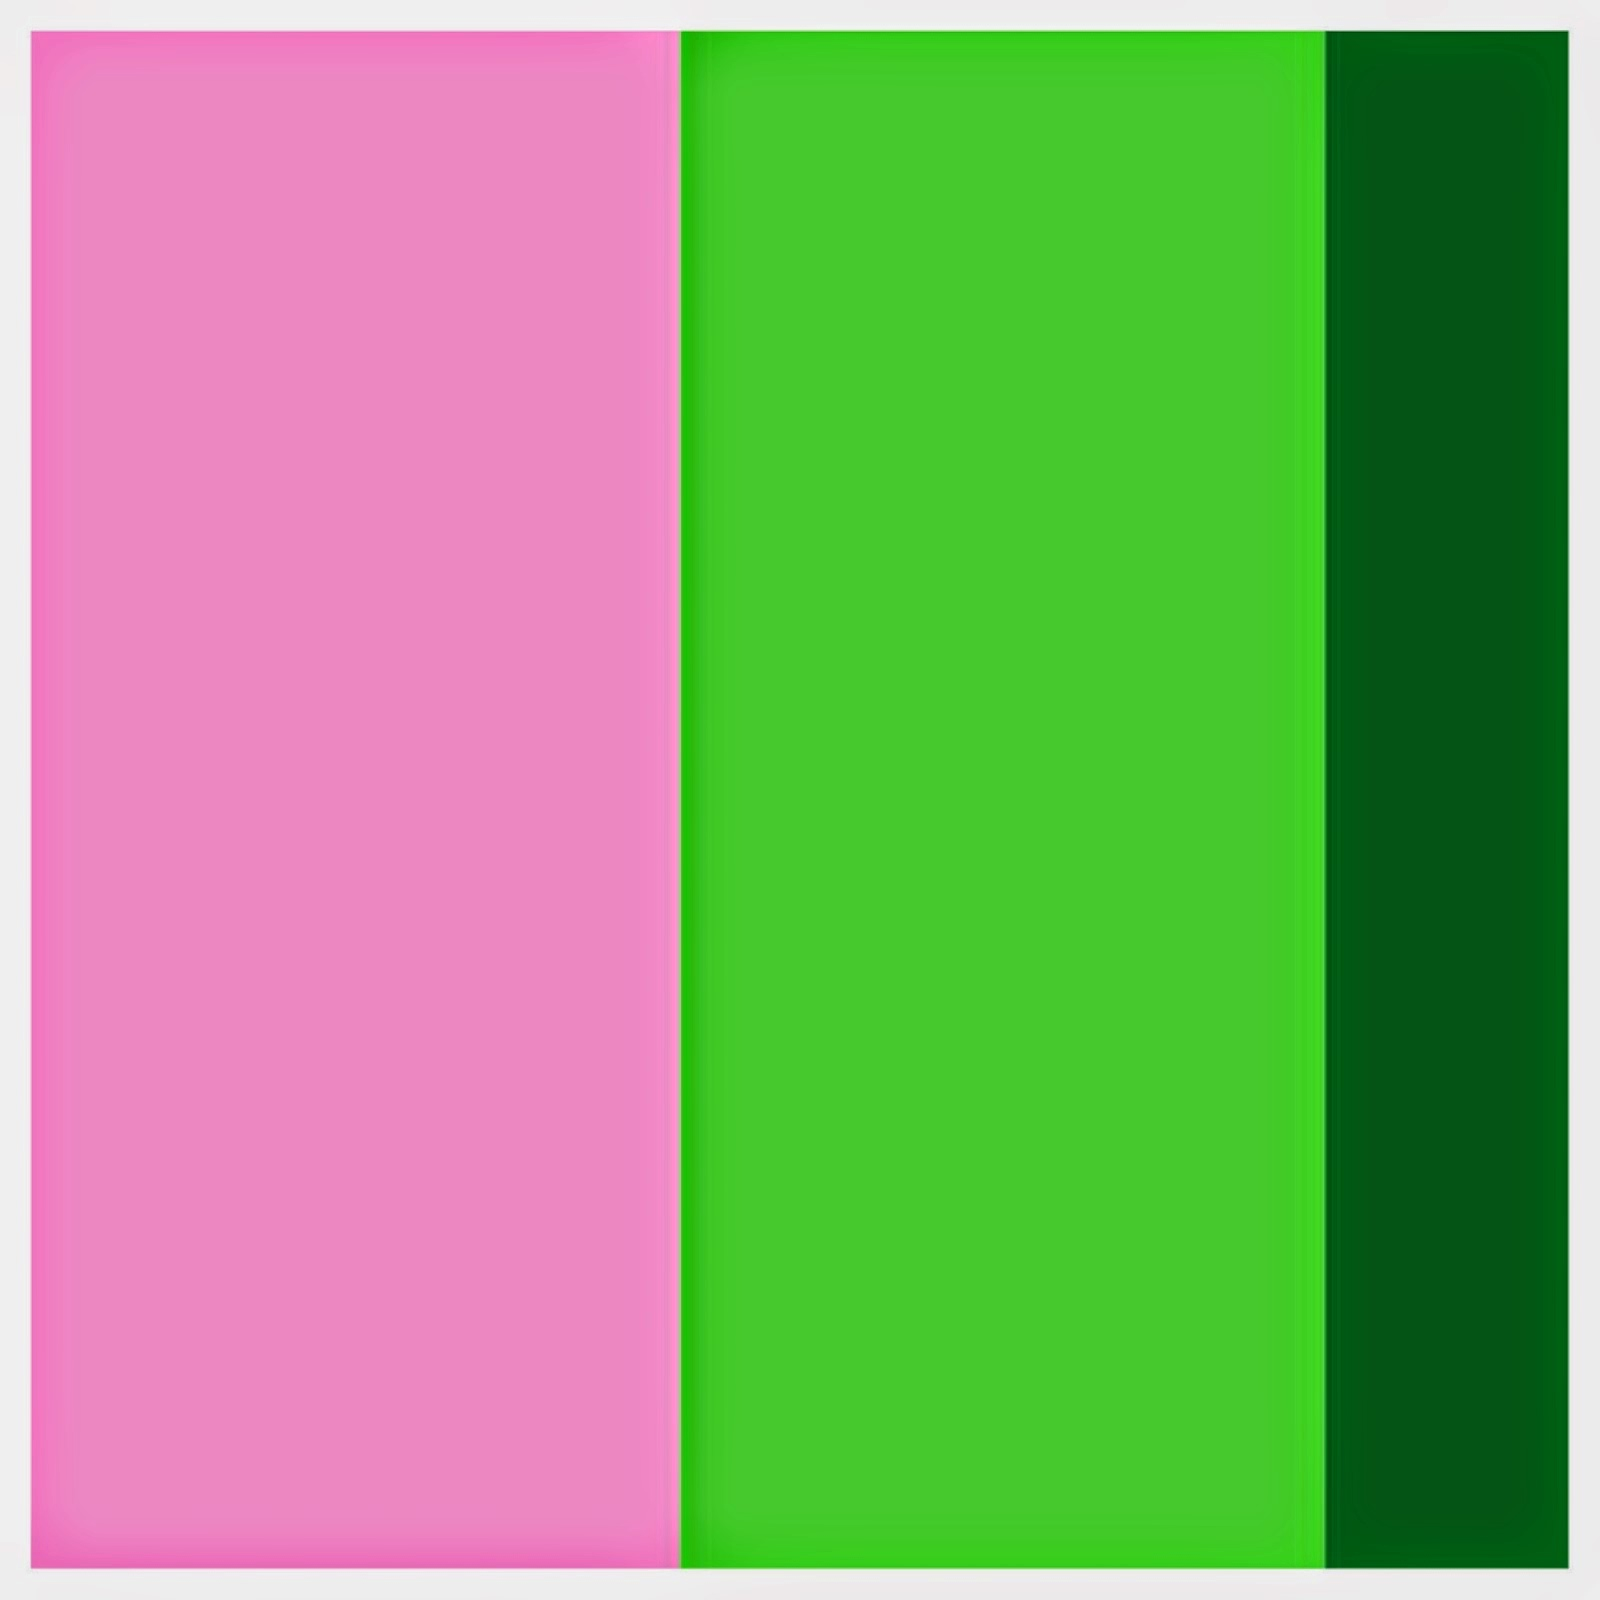 Itsamistry Design Studio: Pink, Apple Green and Dark Green